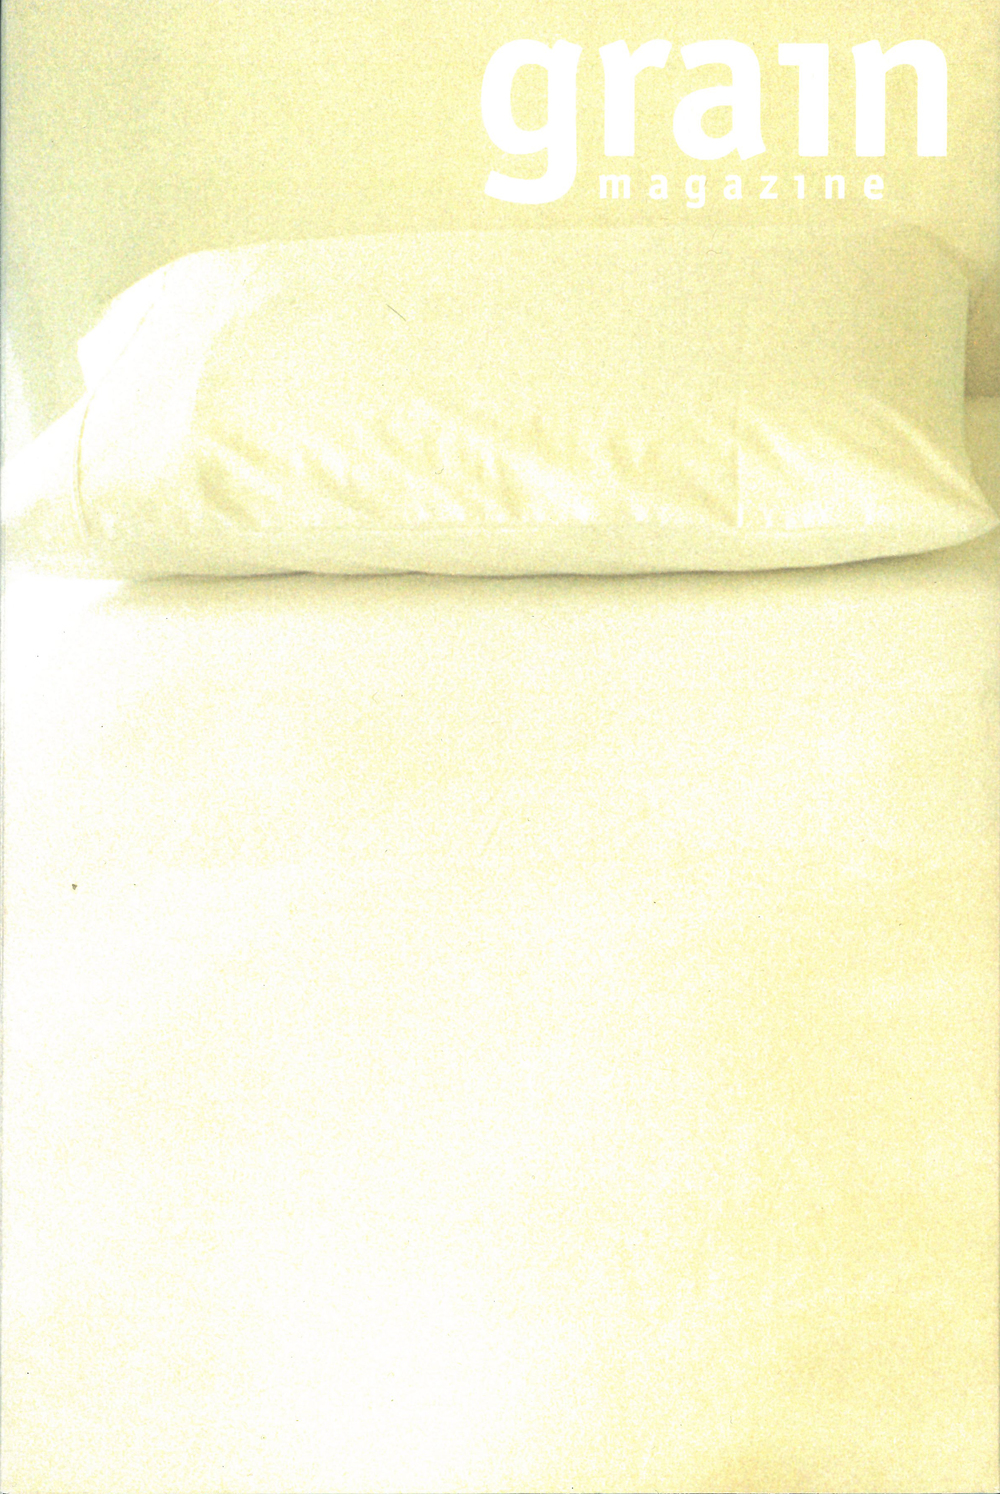 33.3 Winter 2006, Don't Fall Asleep (sleeve)